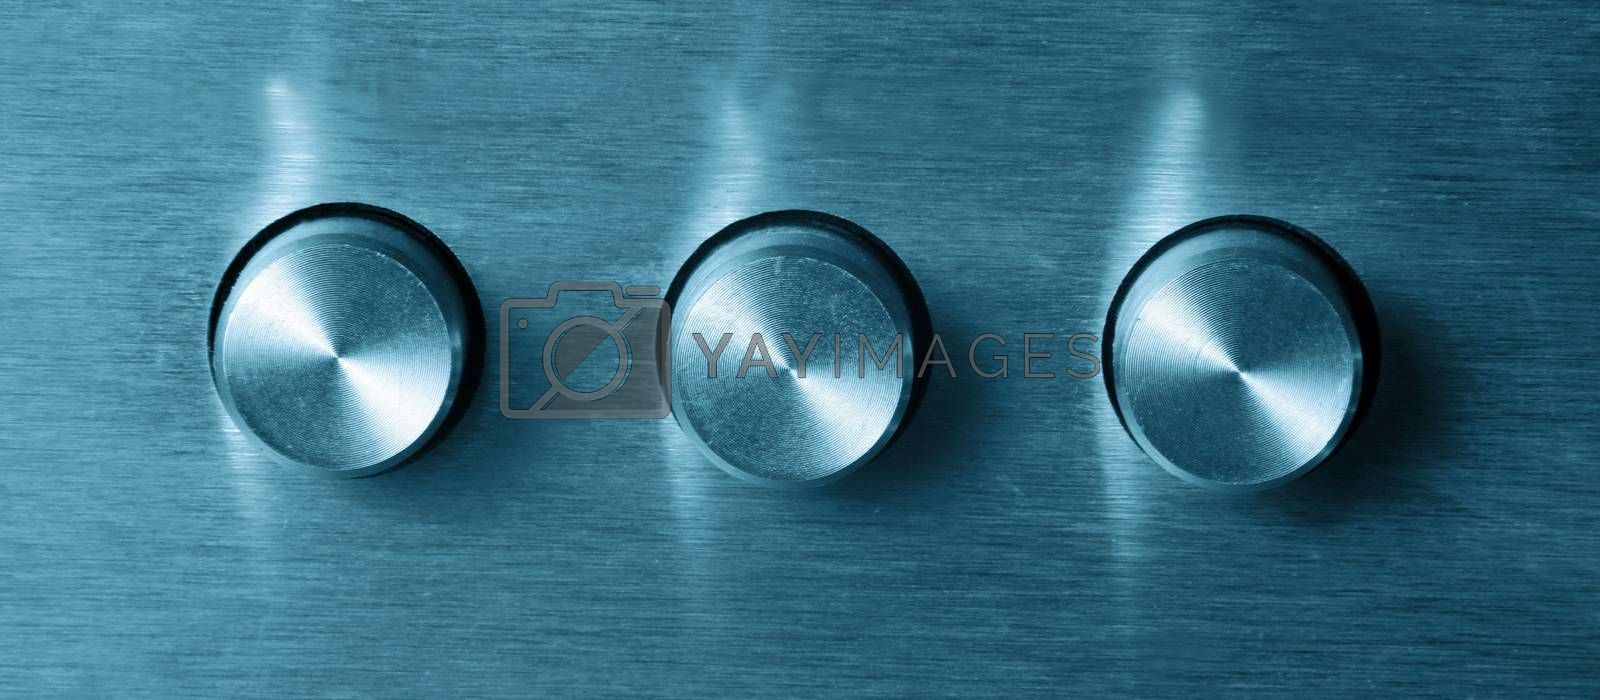 closeup of three electronic round switches